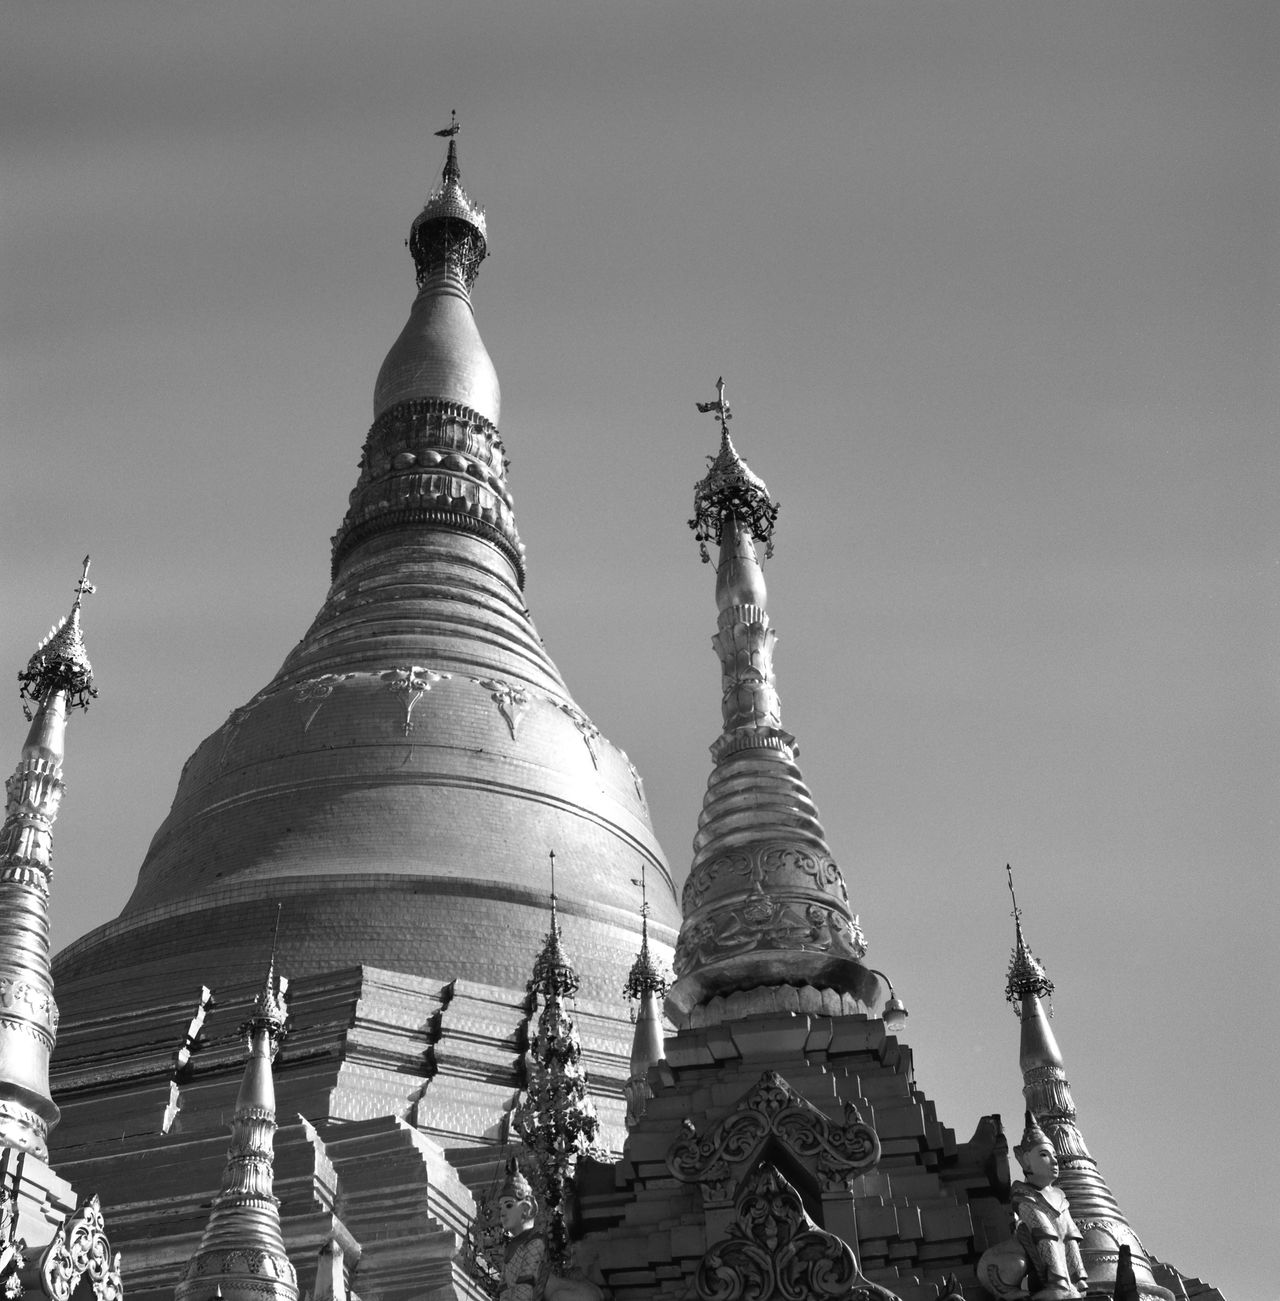 Architectural Detail Architecture Architecture_bw Architecture_collection Blackandwhite Buddha Buddhism Buddhist Temple Building Exterior Buildings Buildings & Sky Built Structure Cultures Film Film Photography Fujifilm Low Angle View Monochrome Myanmar Outdoors Pagoda Place Of Worship Religion Sky Spirituality